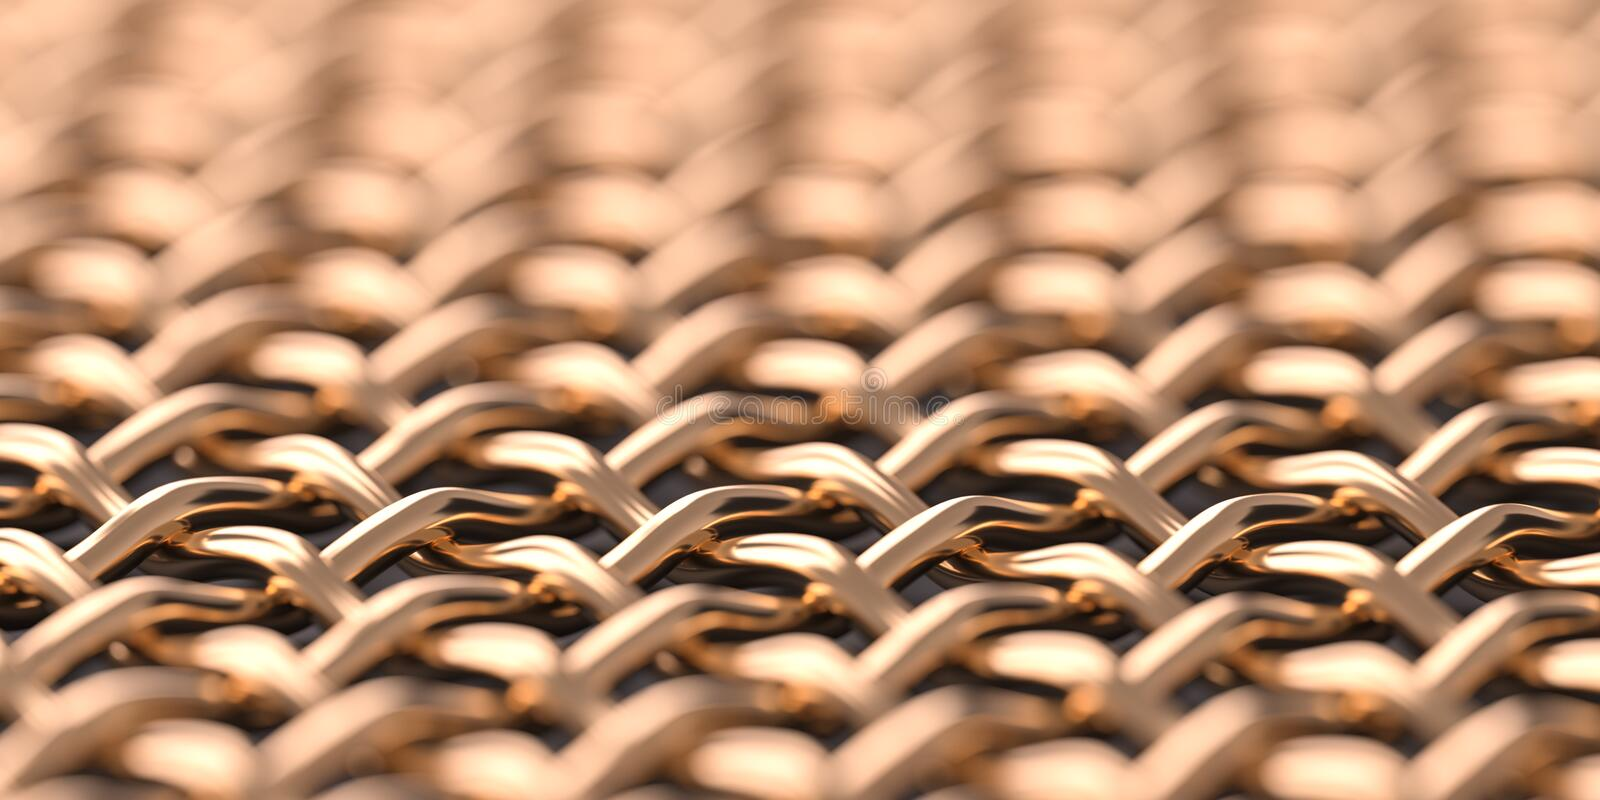 Copper mesh macro background royalty free stock photography